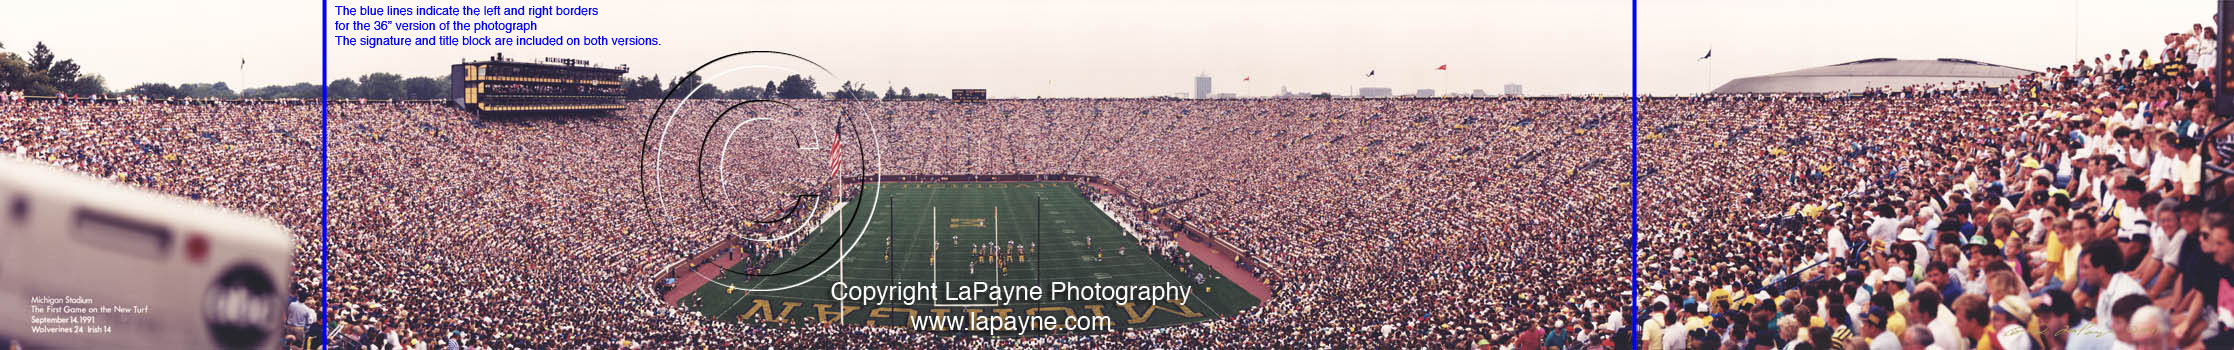 Michigan Stadium 1991 Panorama